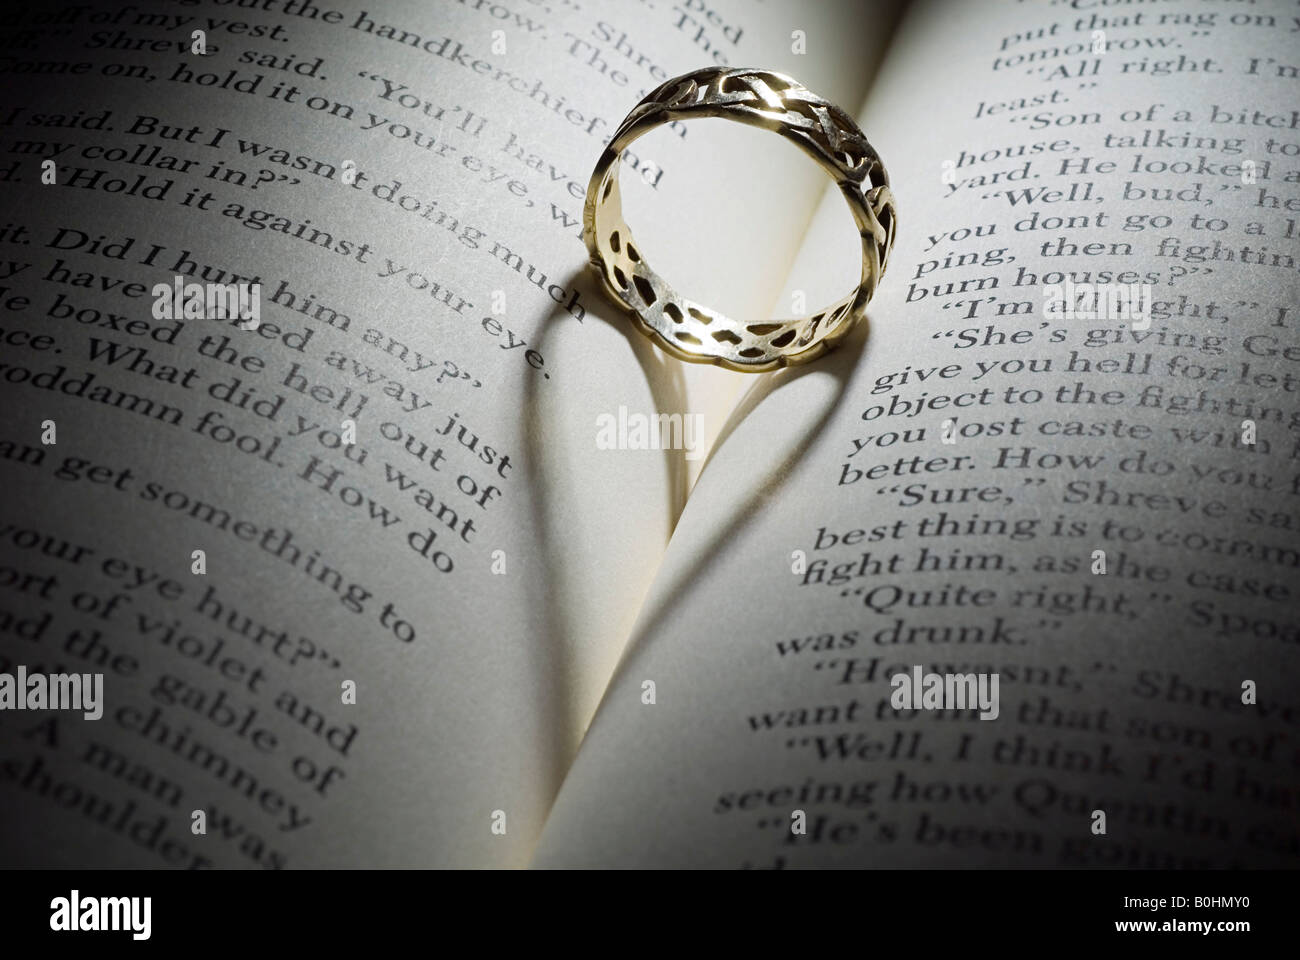 Book Of Life Love Will Rise - I Don't Know You